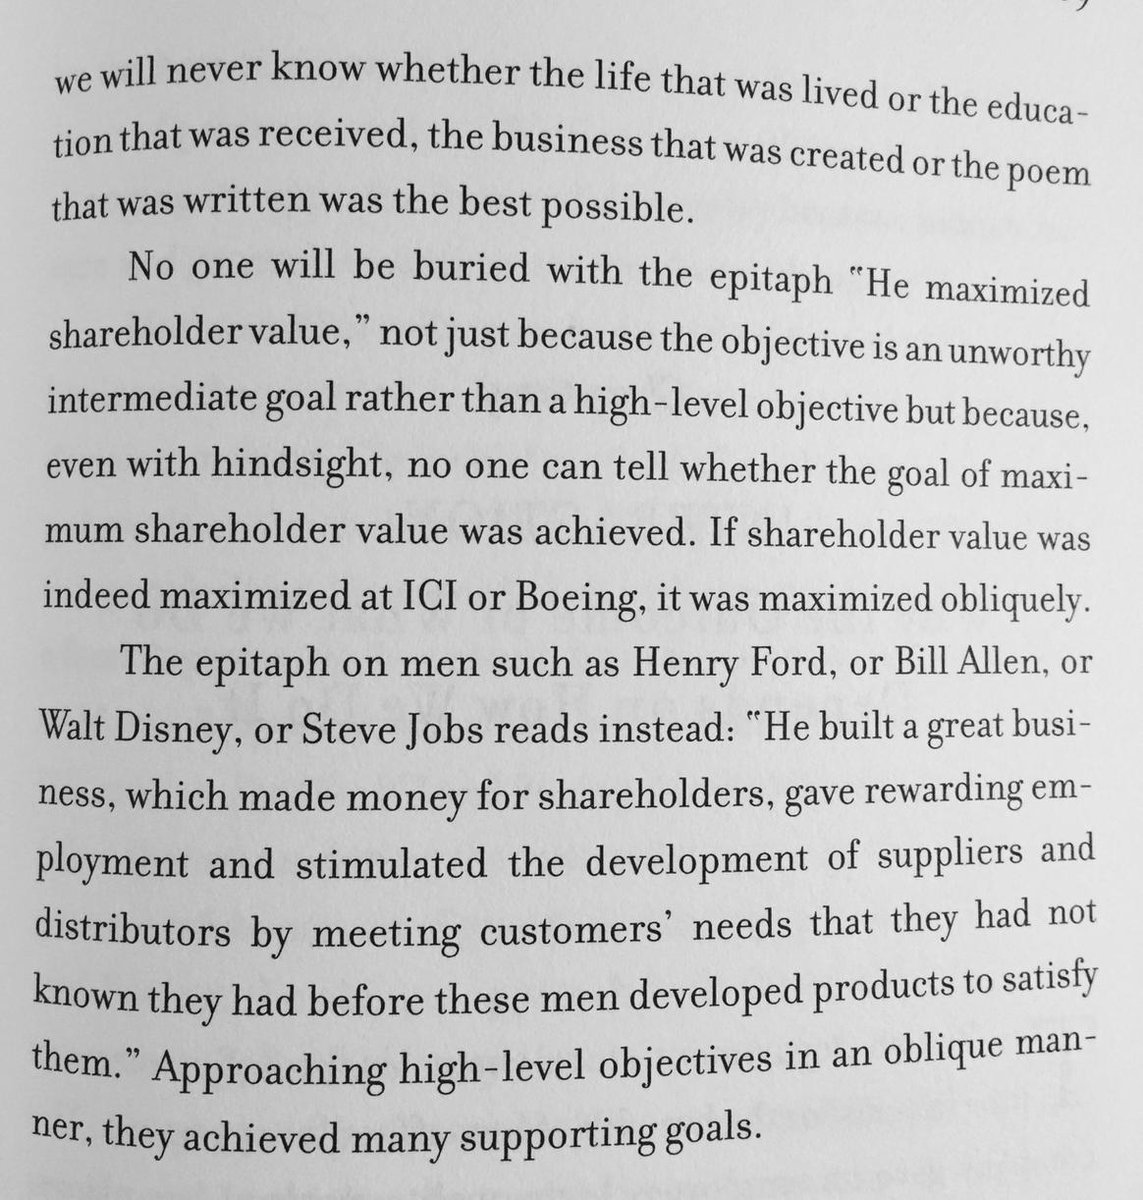 """No one will be buried with the epitaph 'He maximized shareholder value.'"" -John Kay, Obliquity. http://t.co/RvzPN8k2q2"